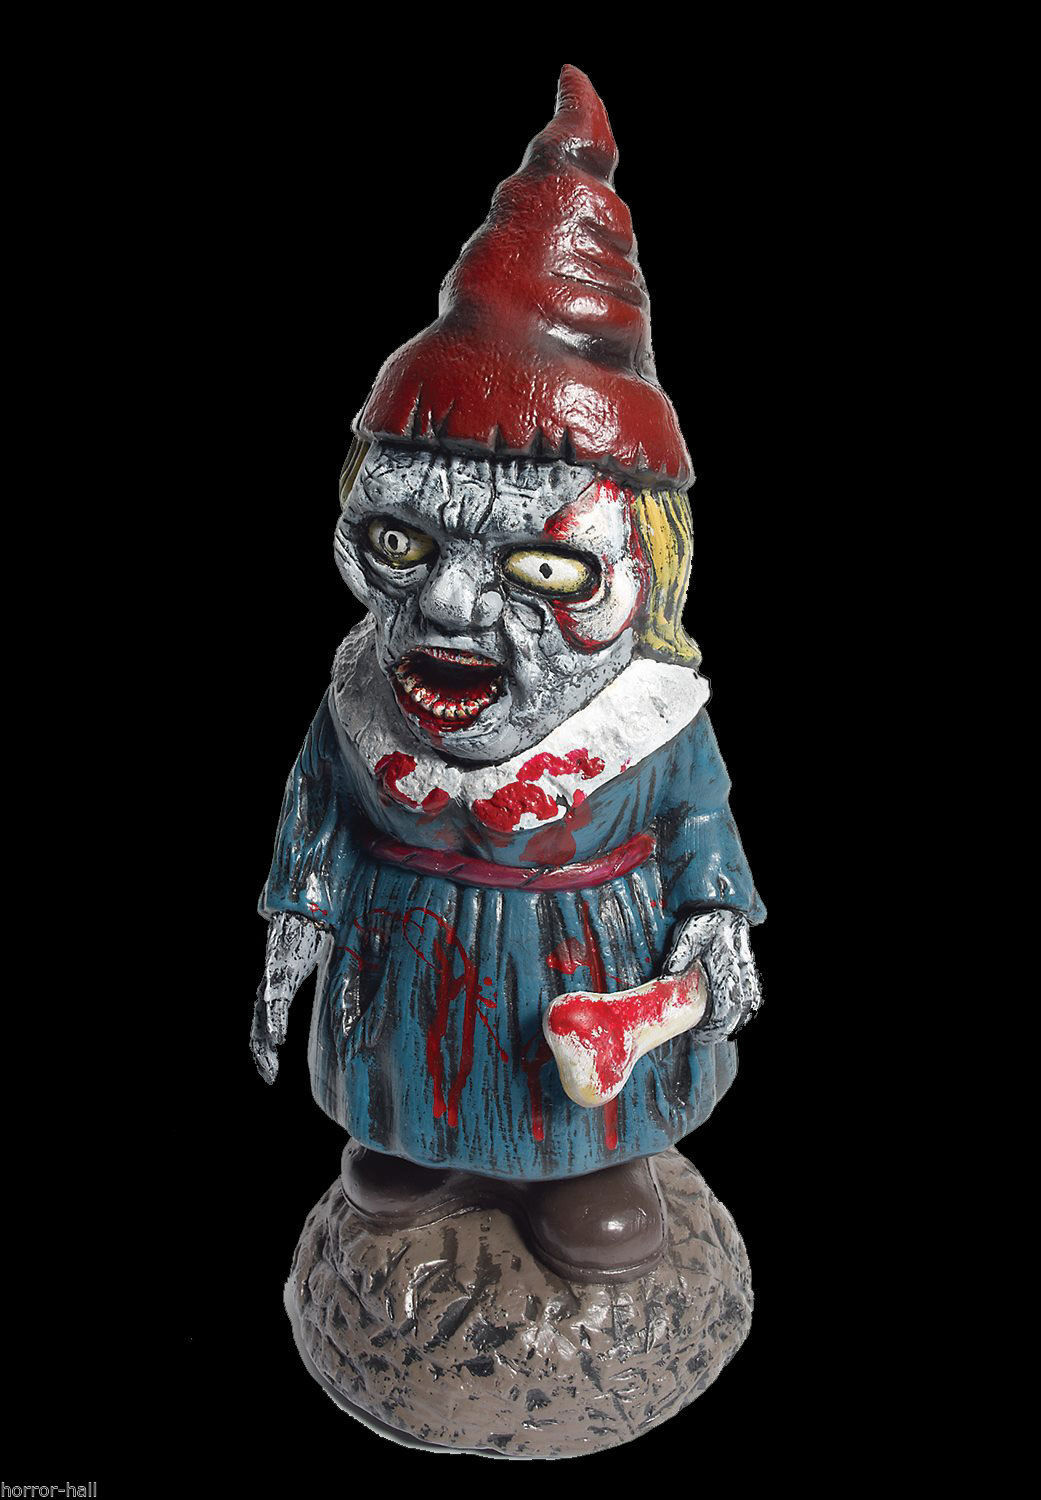 Bloody Zombie GNOME-BIE-ETT GIRL Walking Dead Horror Prop Garden Yard Decoration